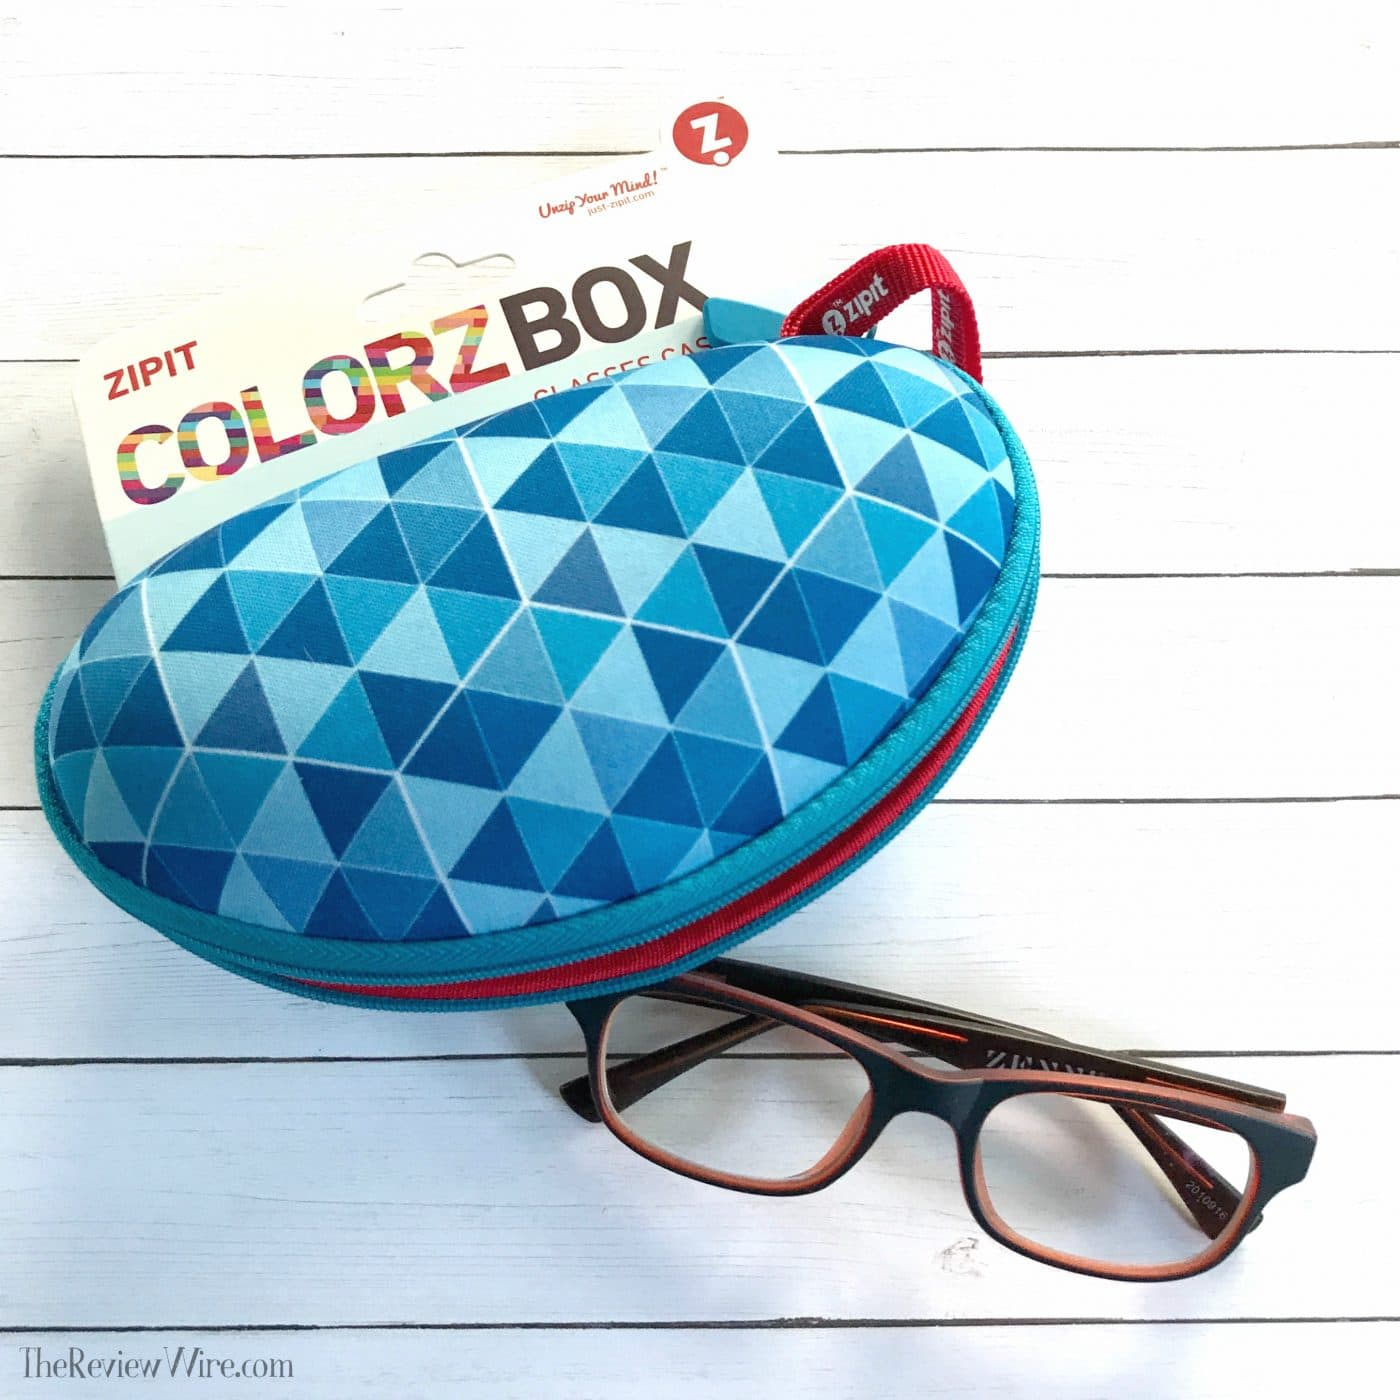 ZIPIT Colorz Box Glasses Case